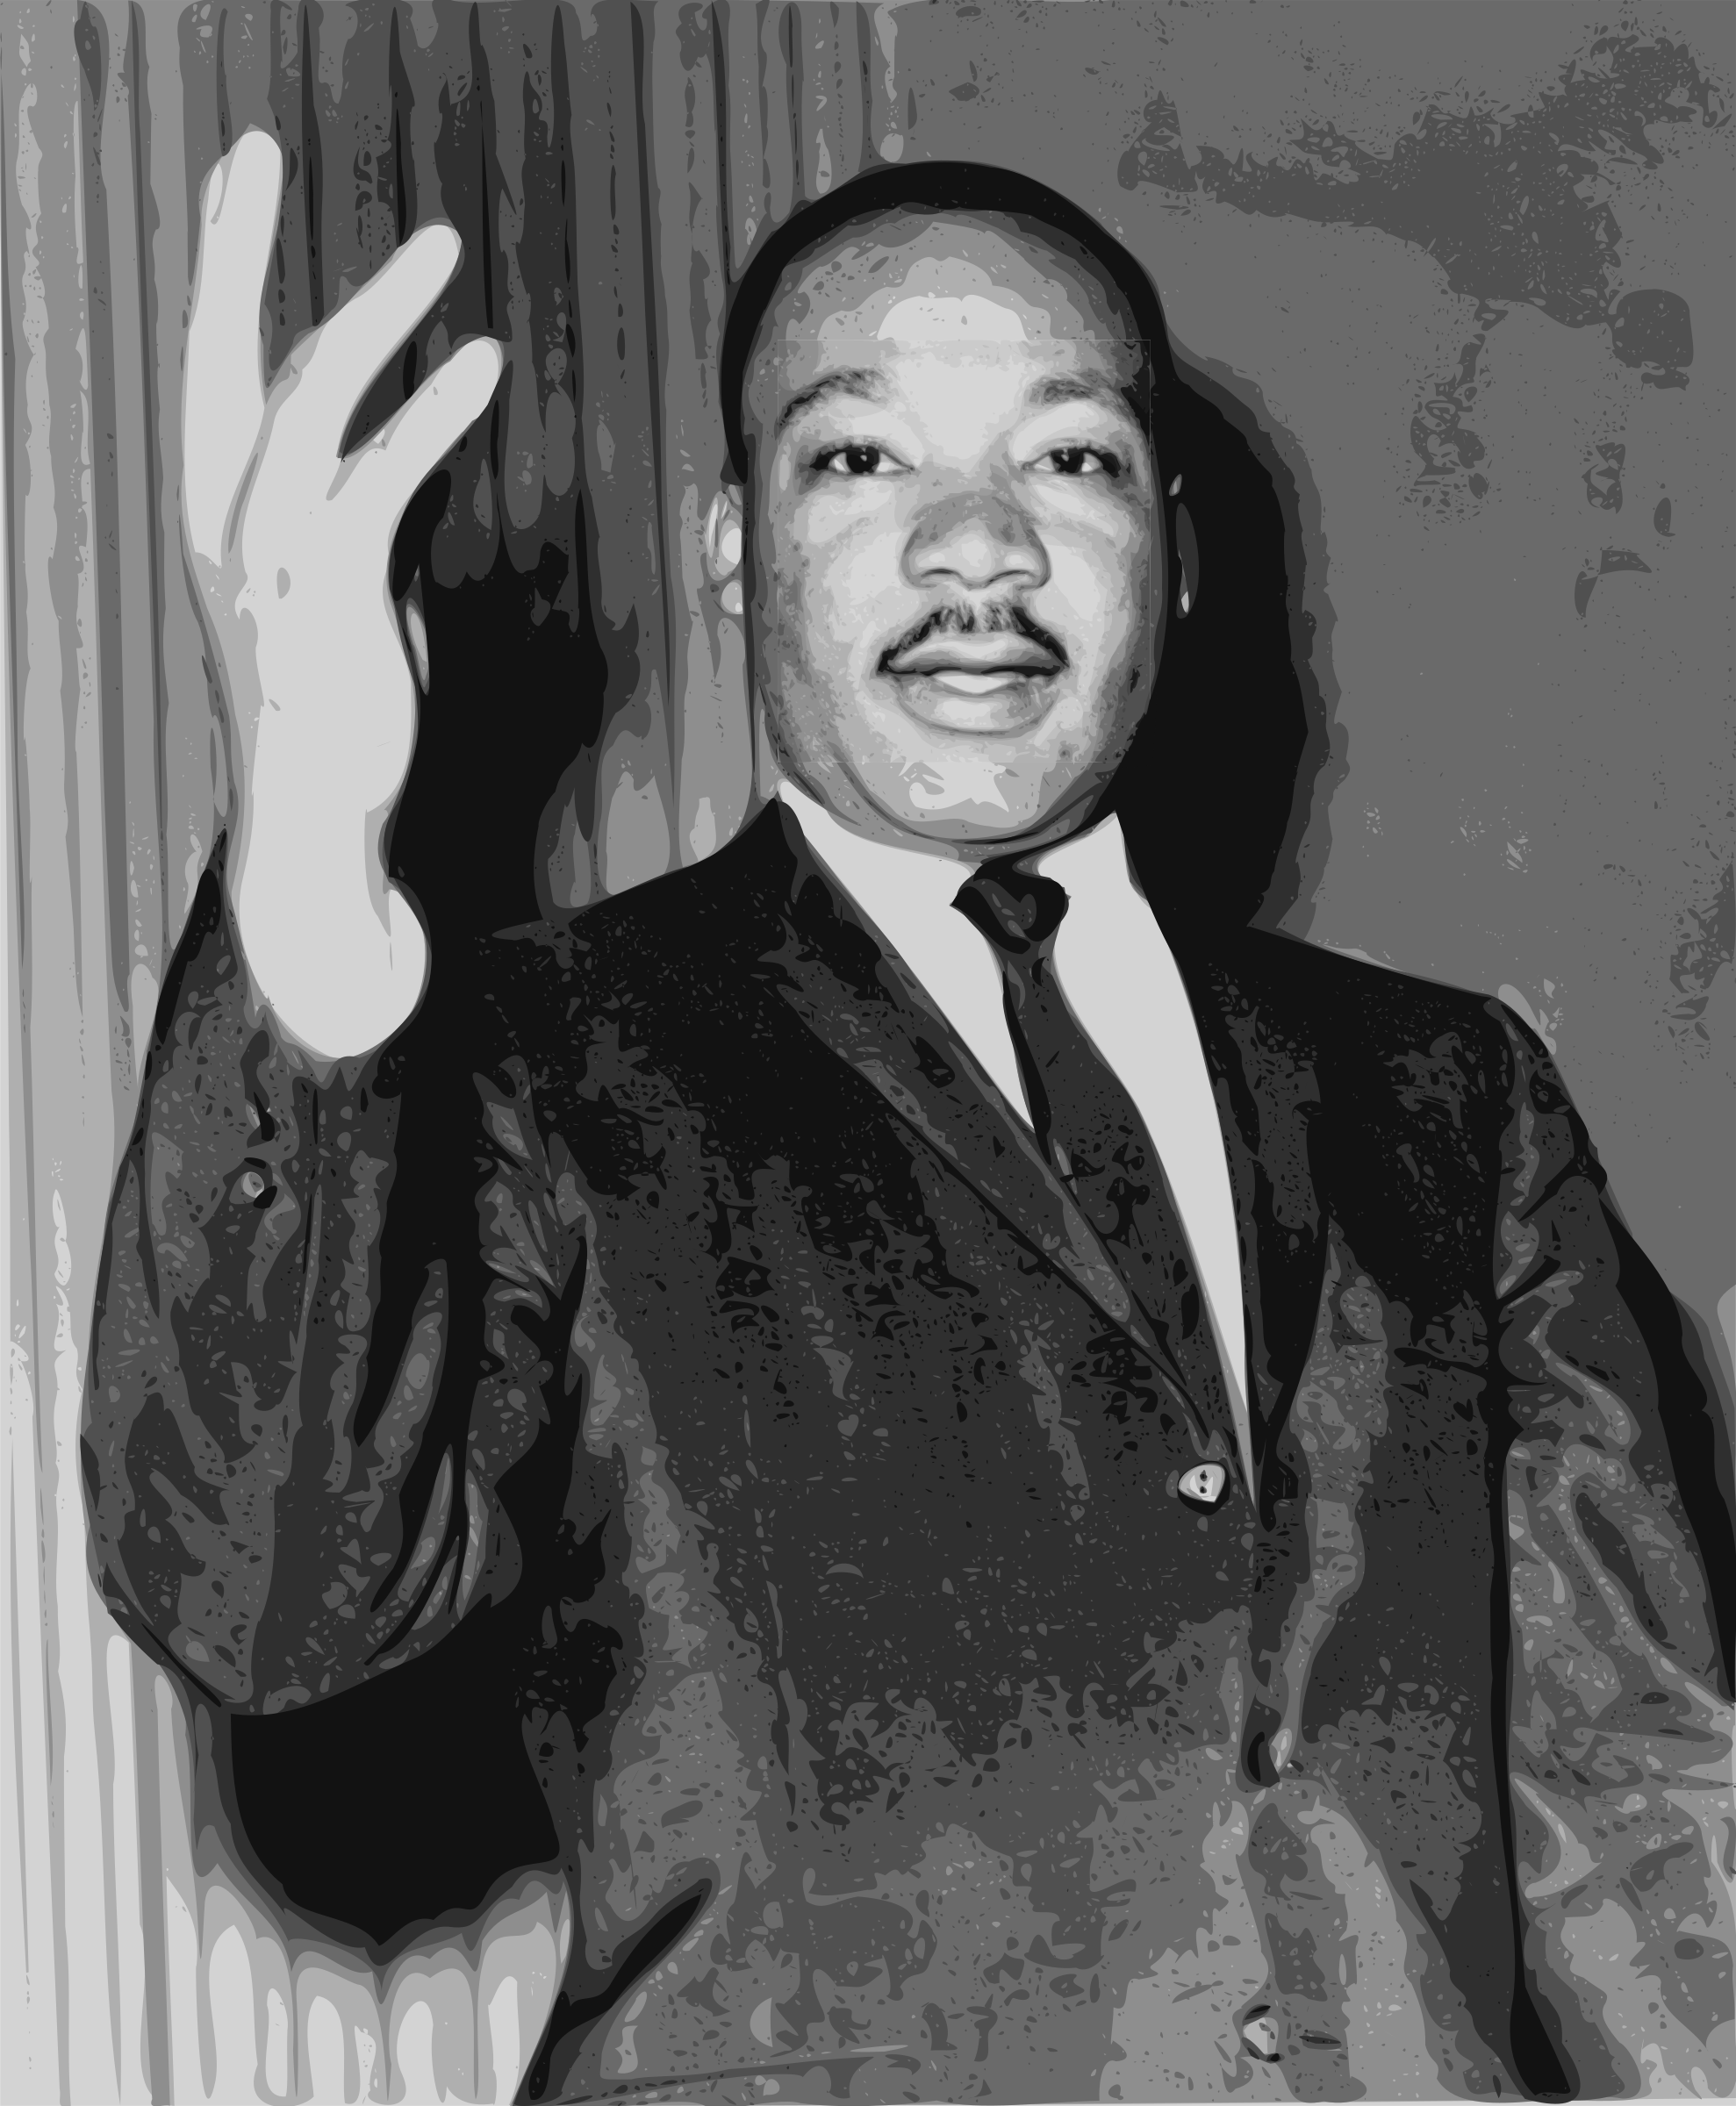 Martin Luther King Jr. Speaking by j4p4n